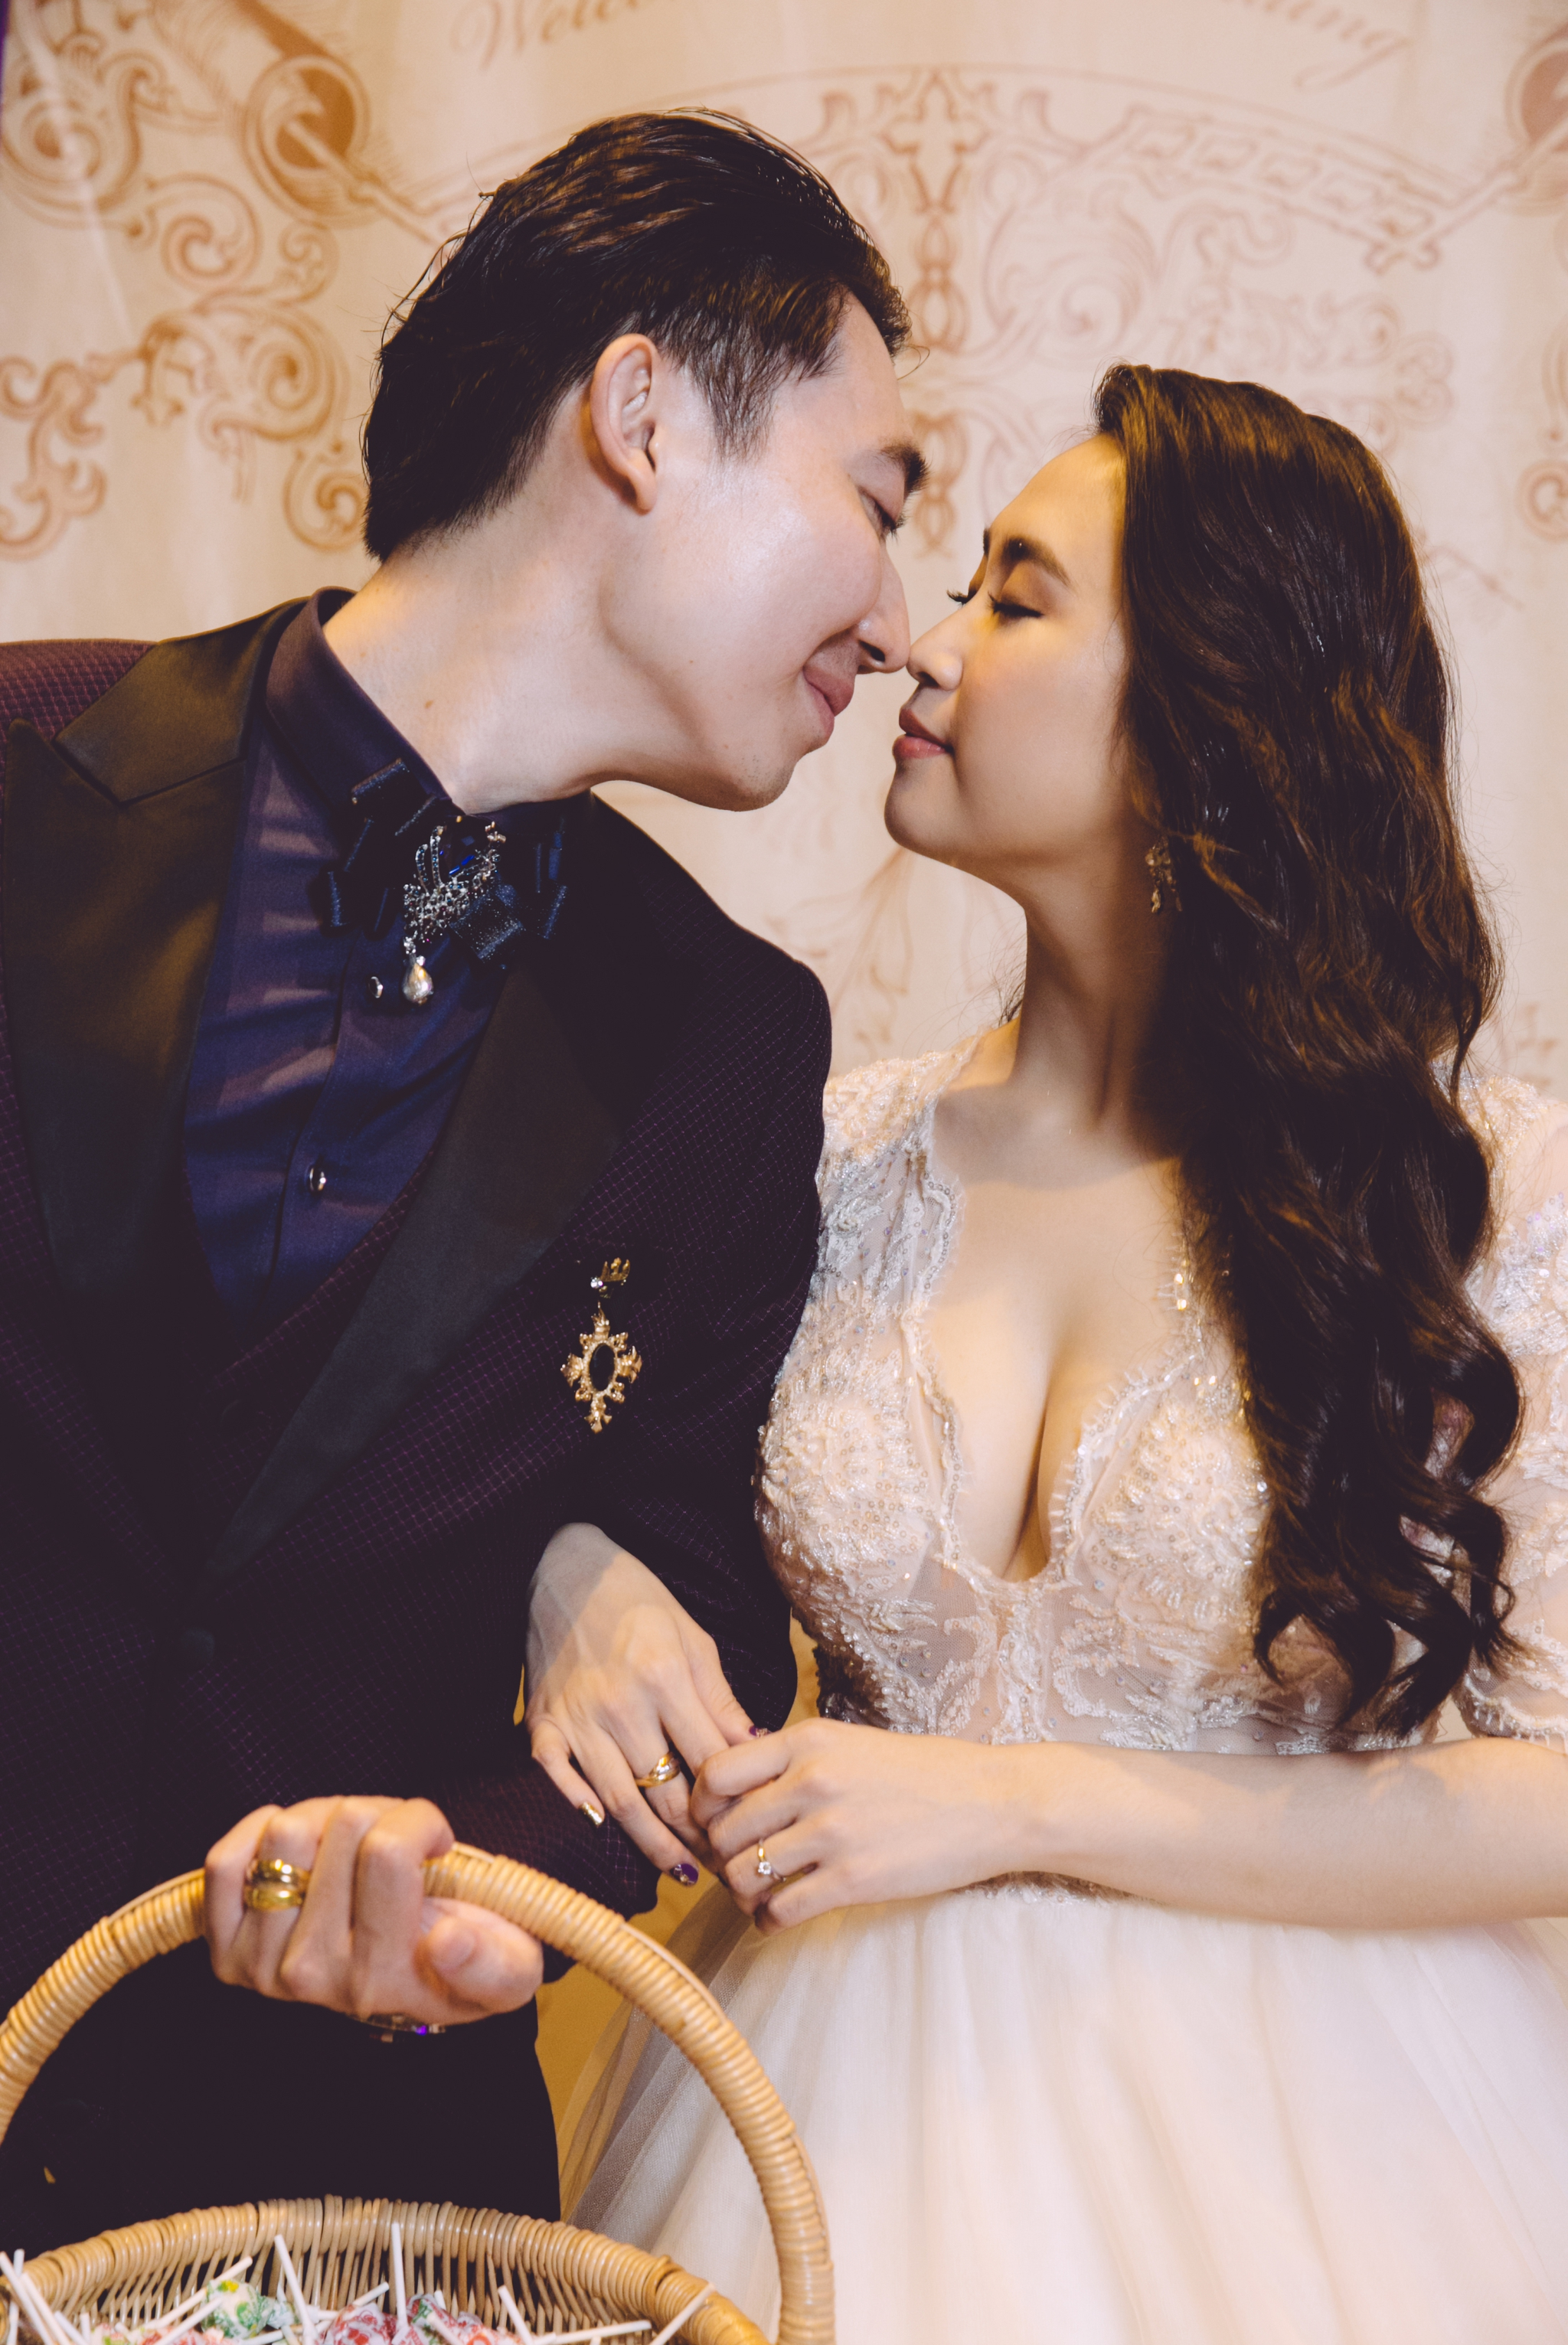 Keddy+Richard-wedding-新莊頤品飯店-228.jpg